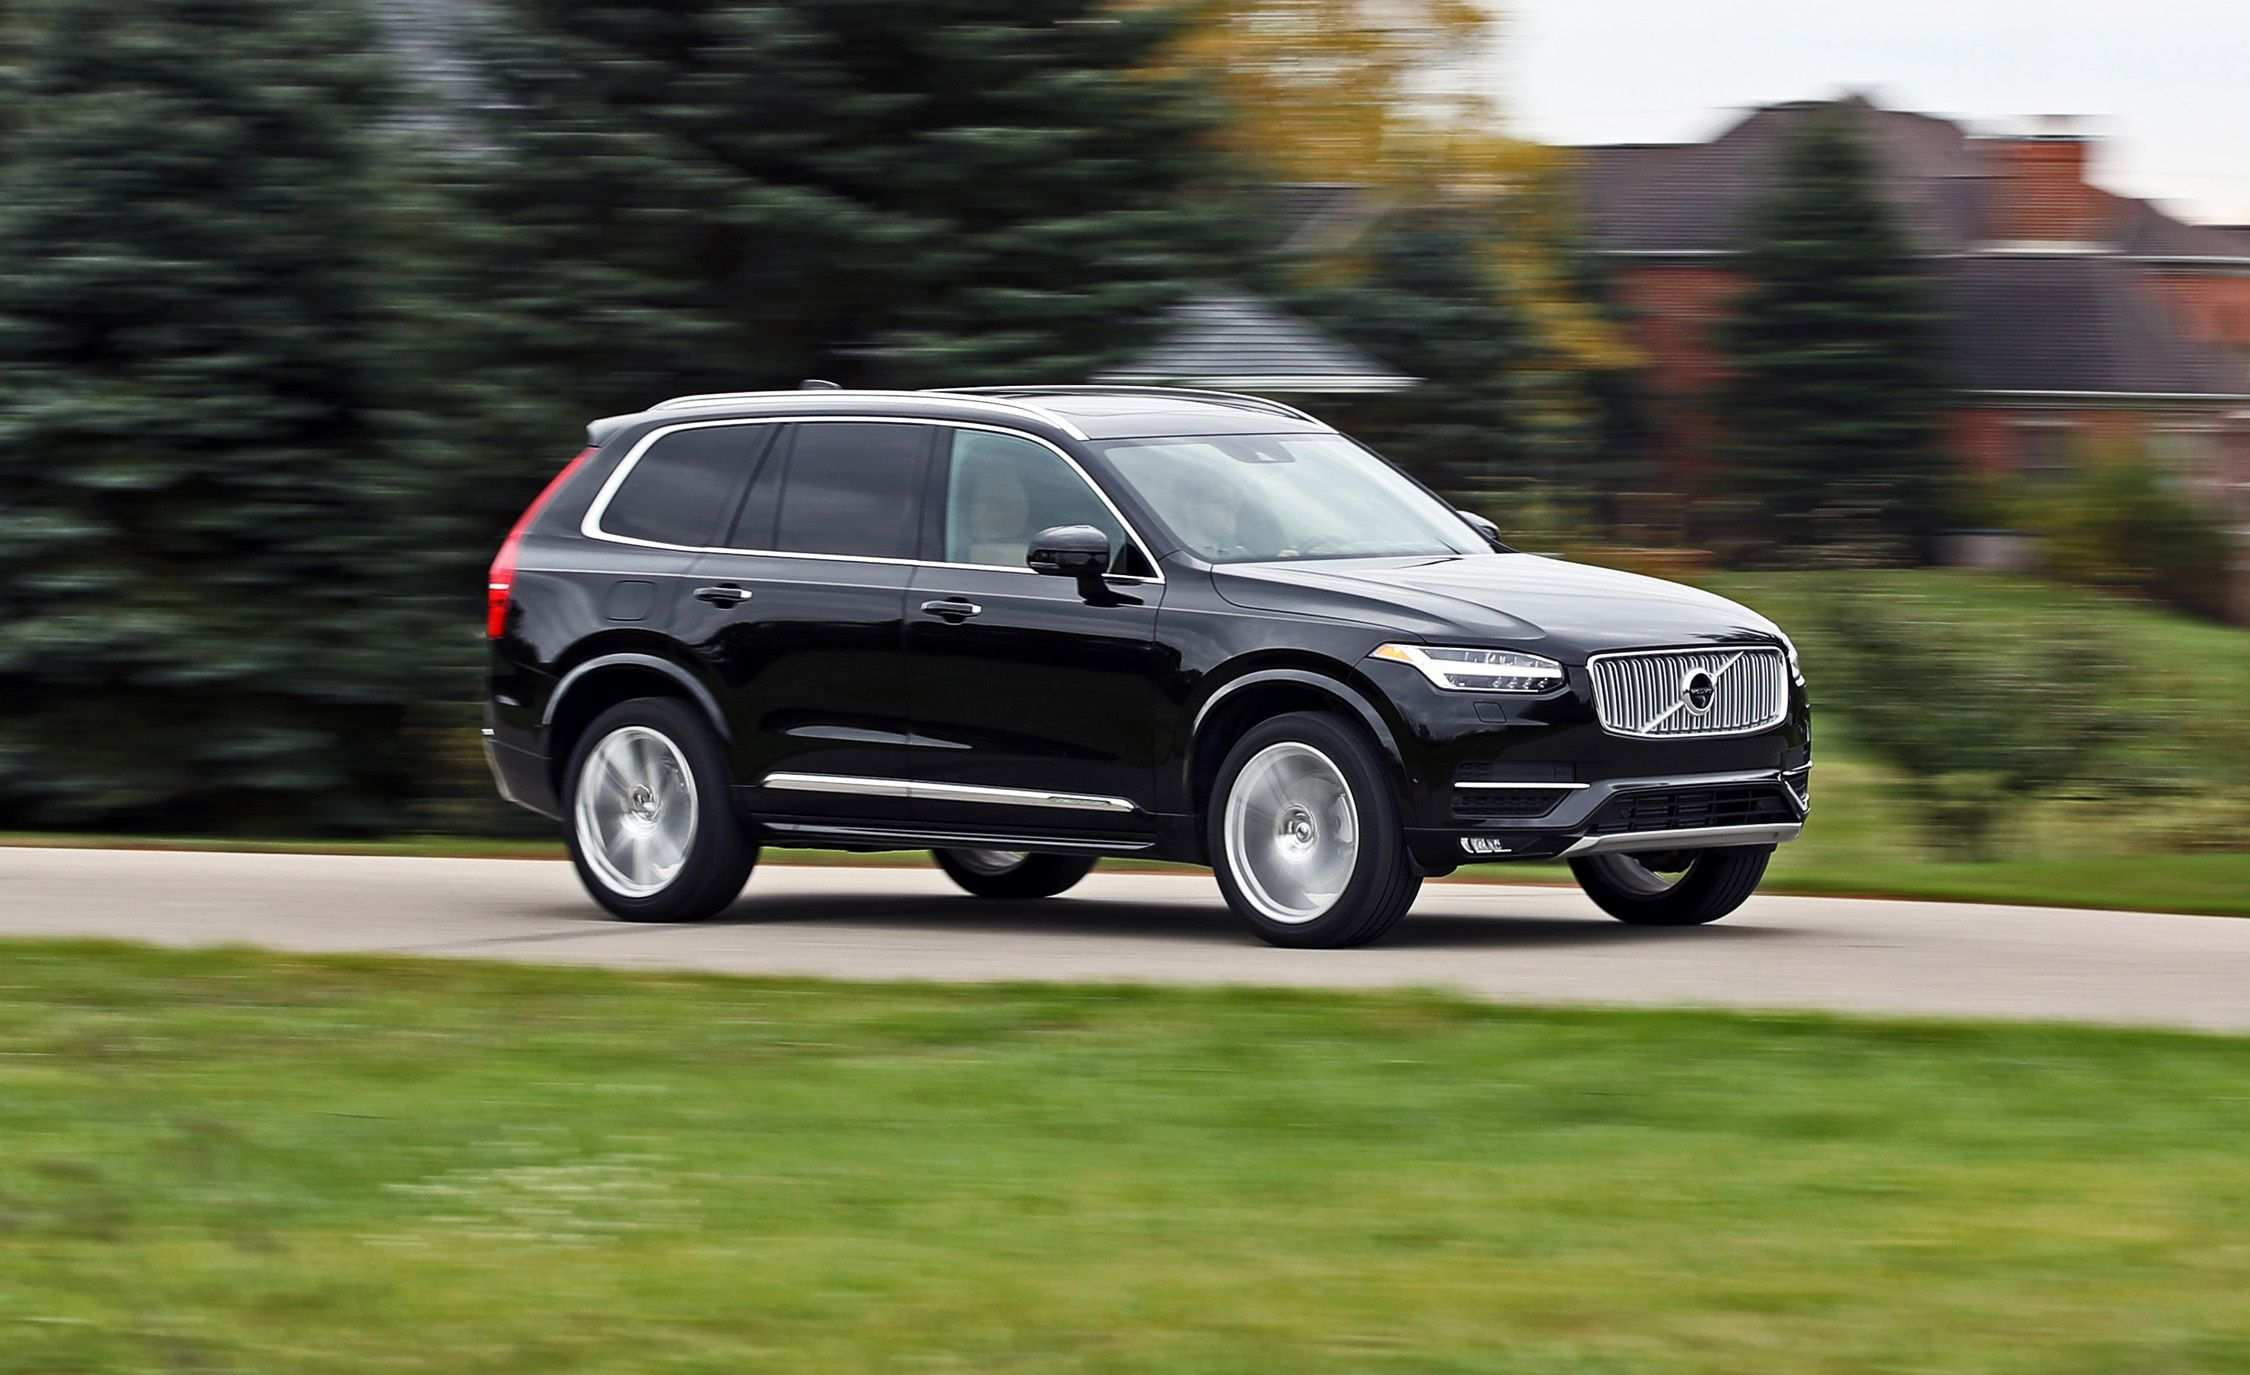 32 Gallery of Cx90 Volvo 2019 Review And Specs Exterior with Cx90 Volvo 2019 Review And Specs